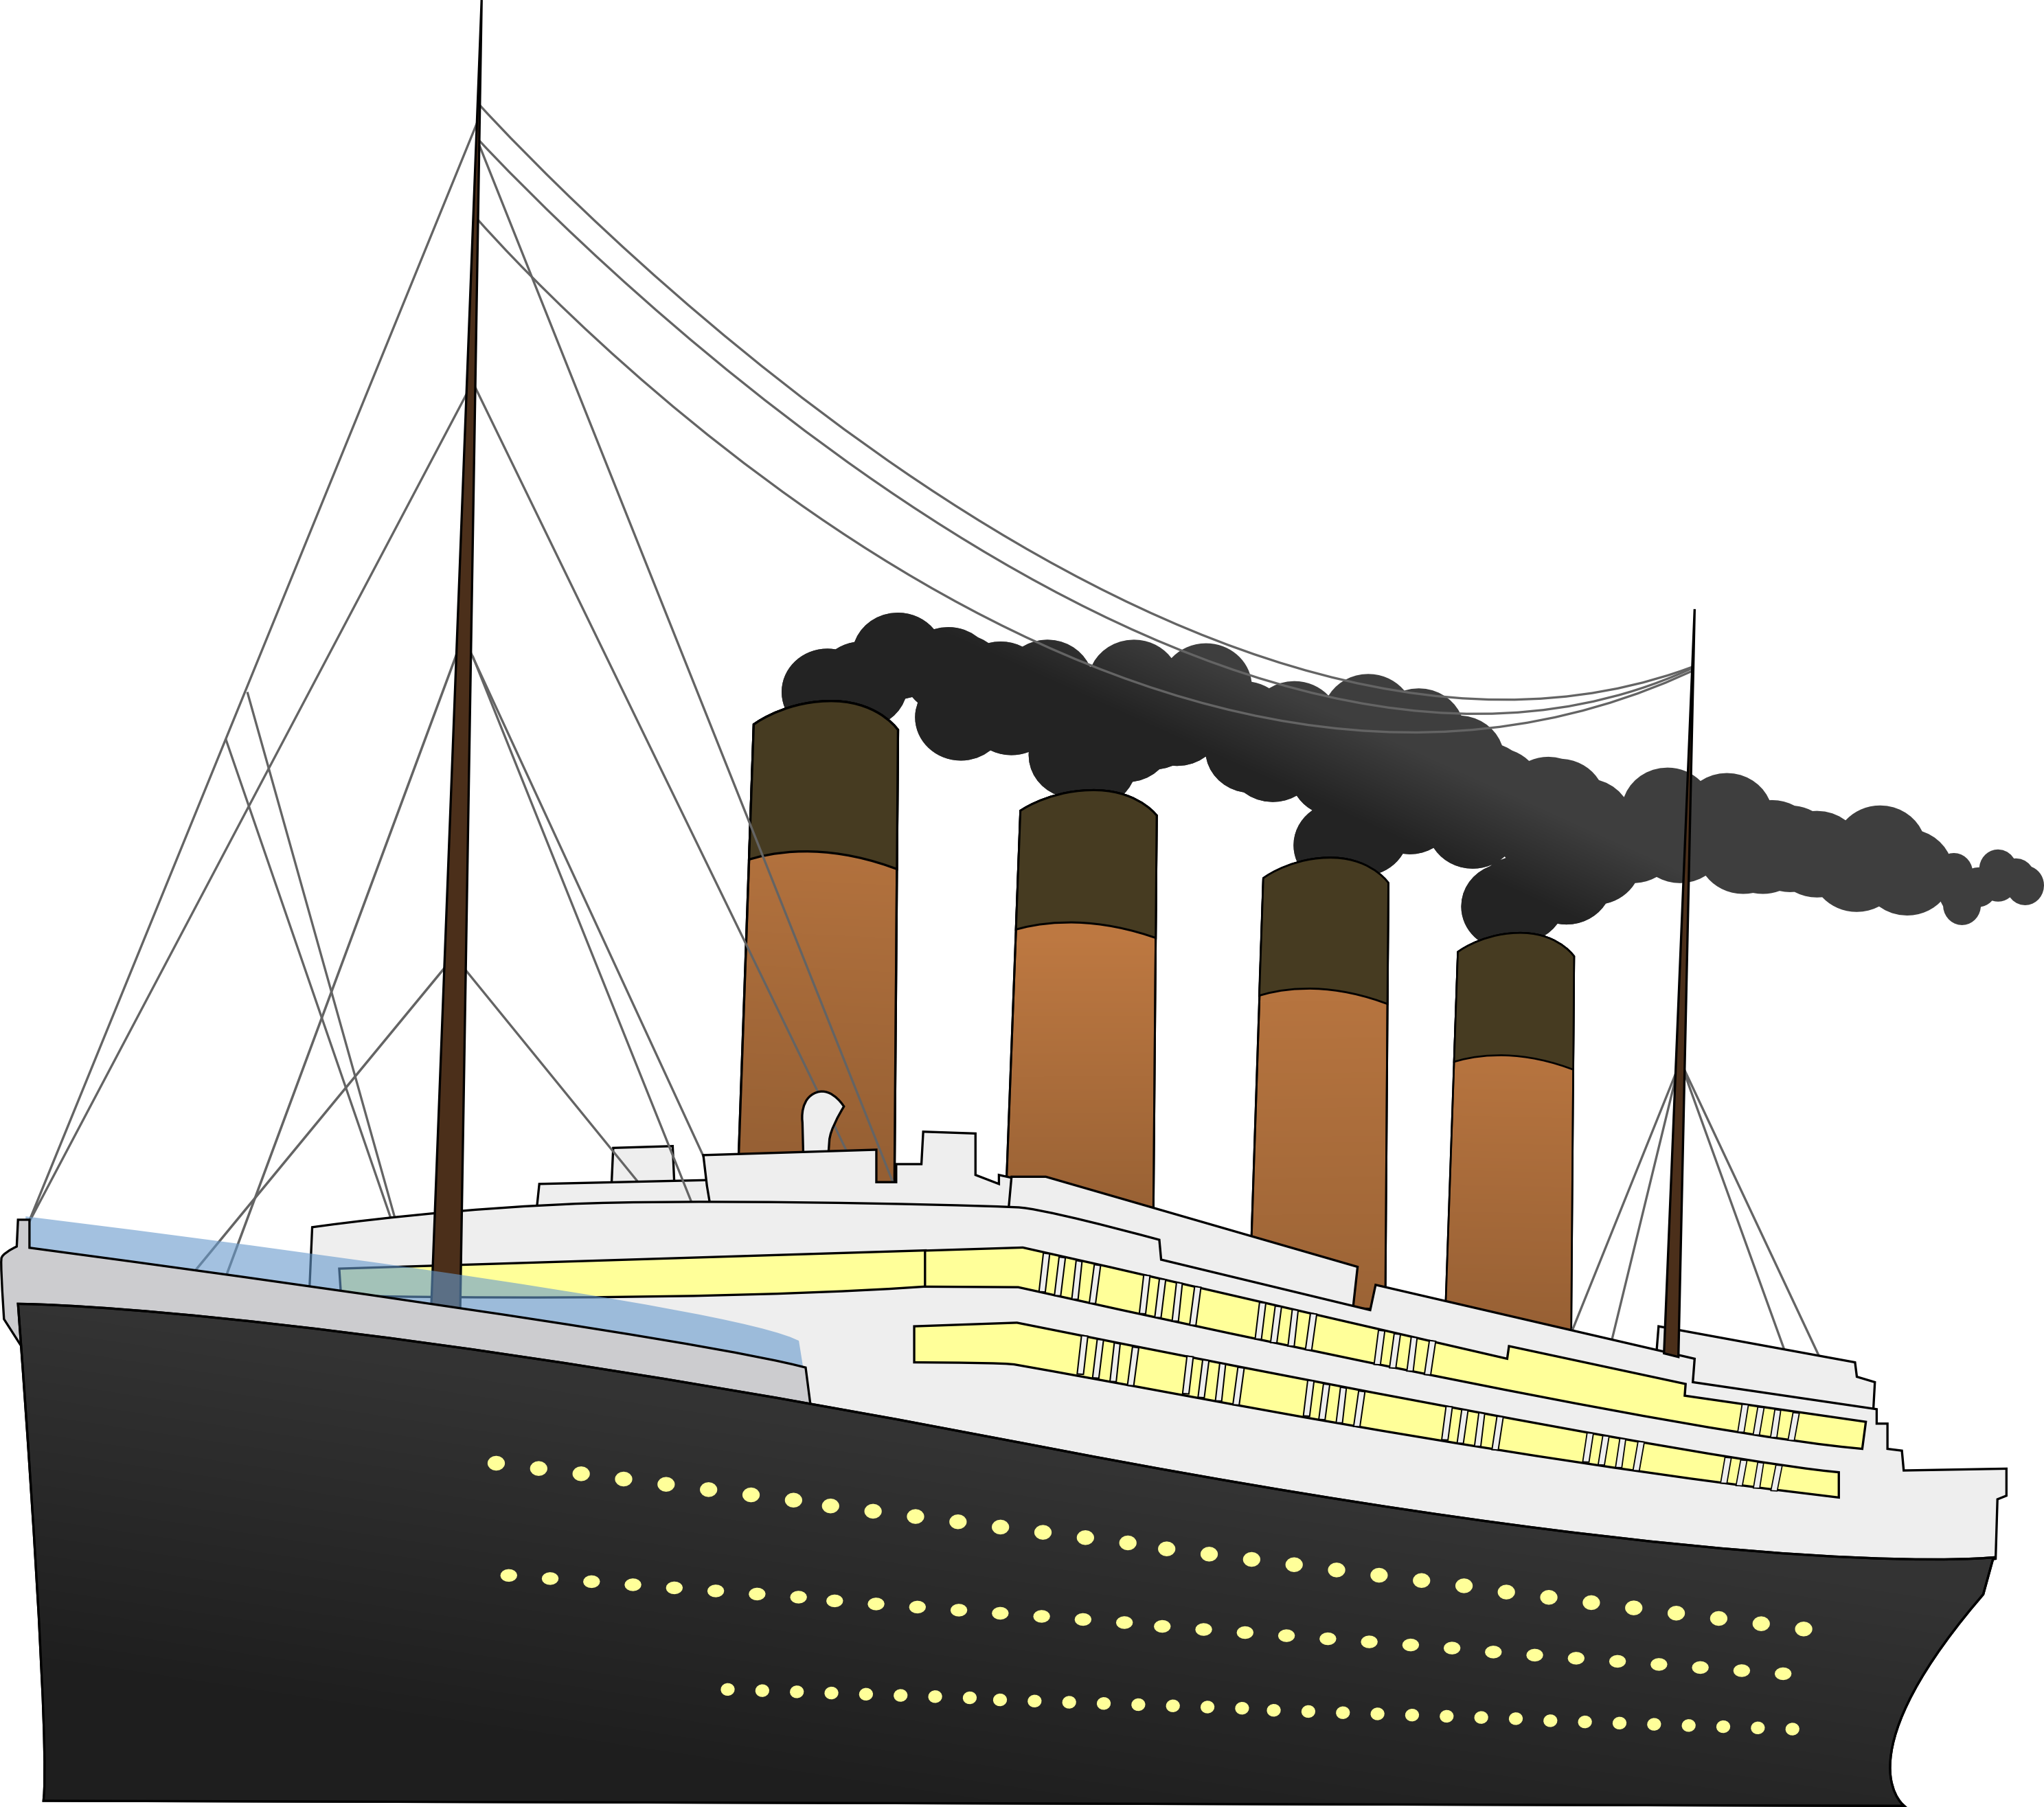 Boat . Titanic clipart jpg royalty free download